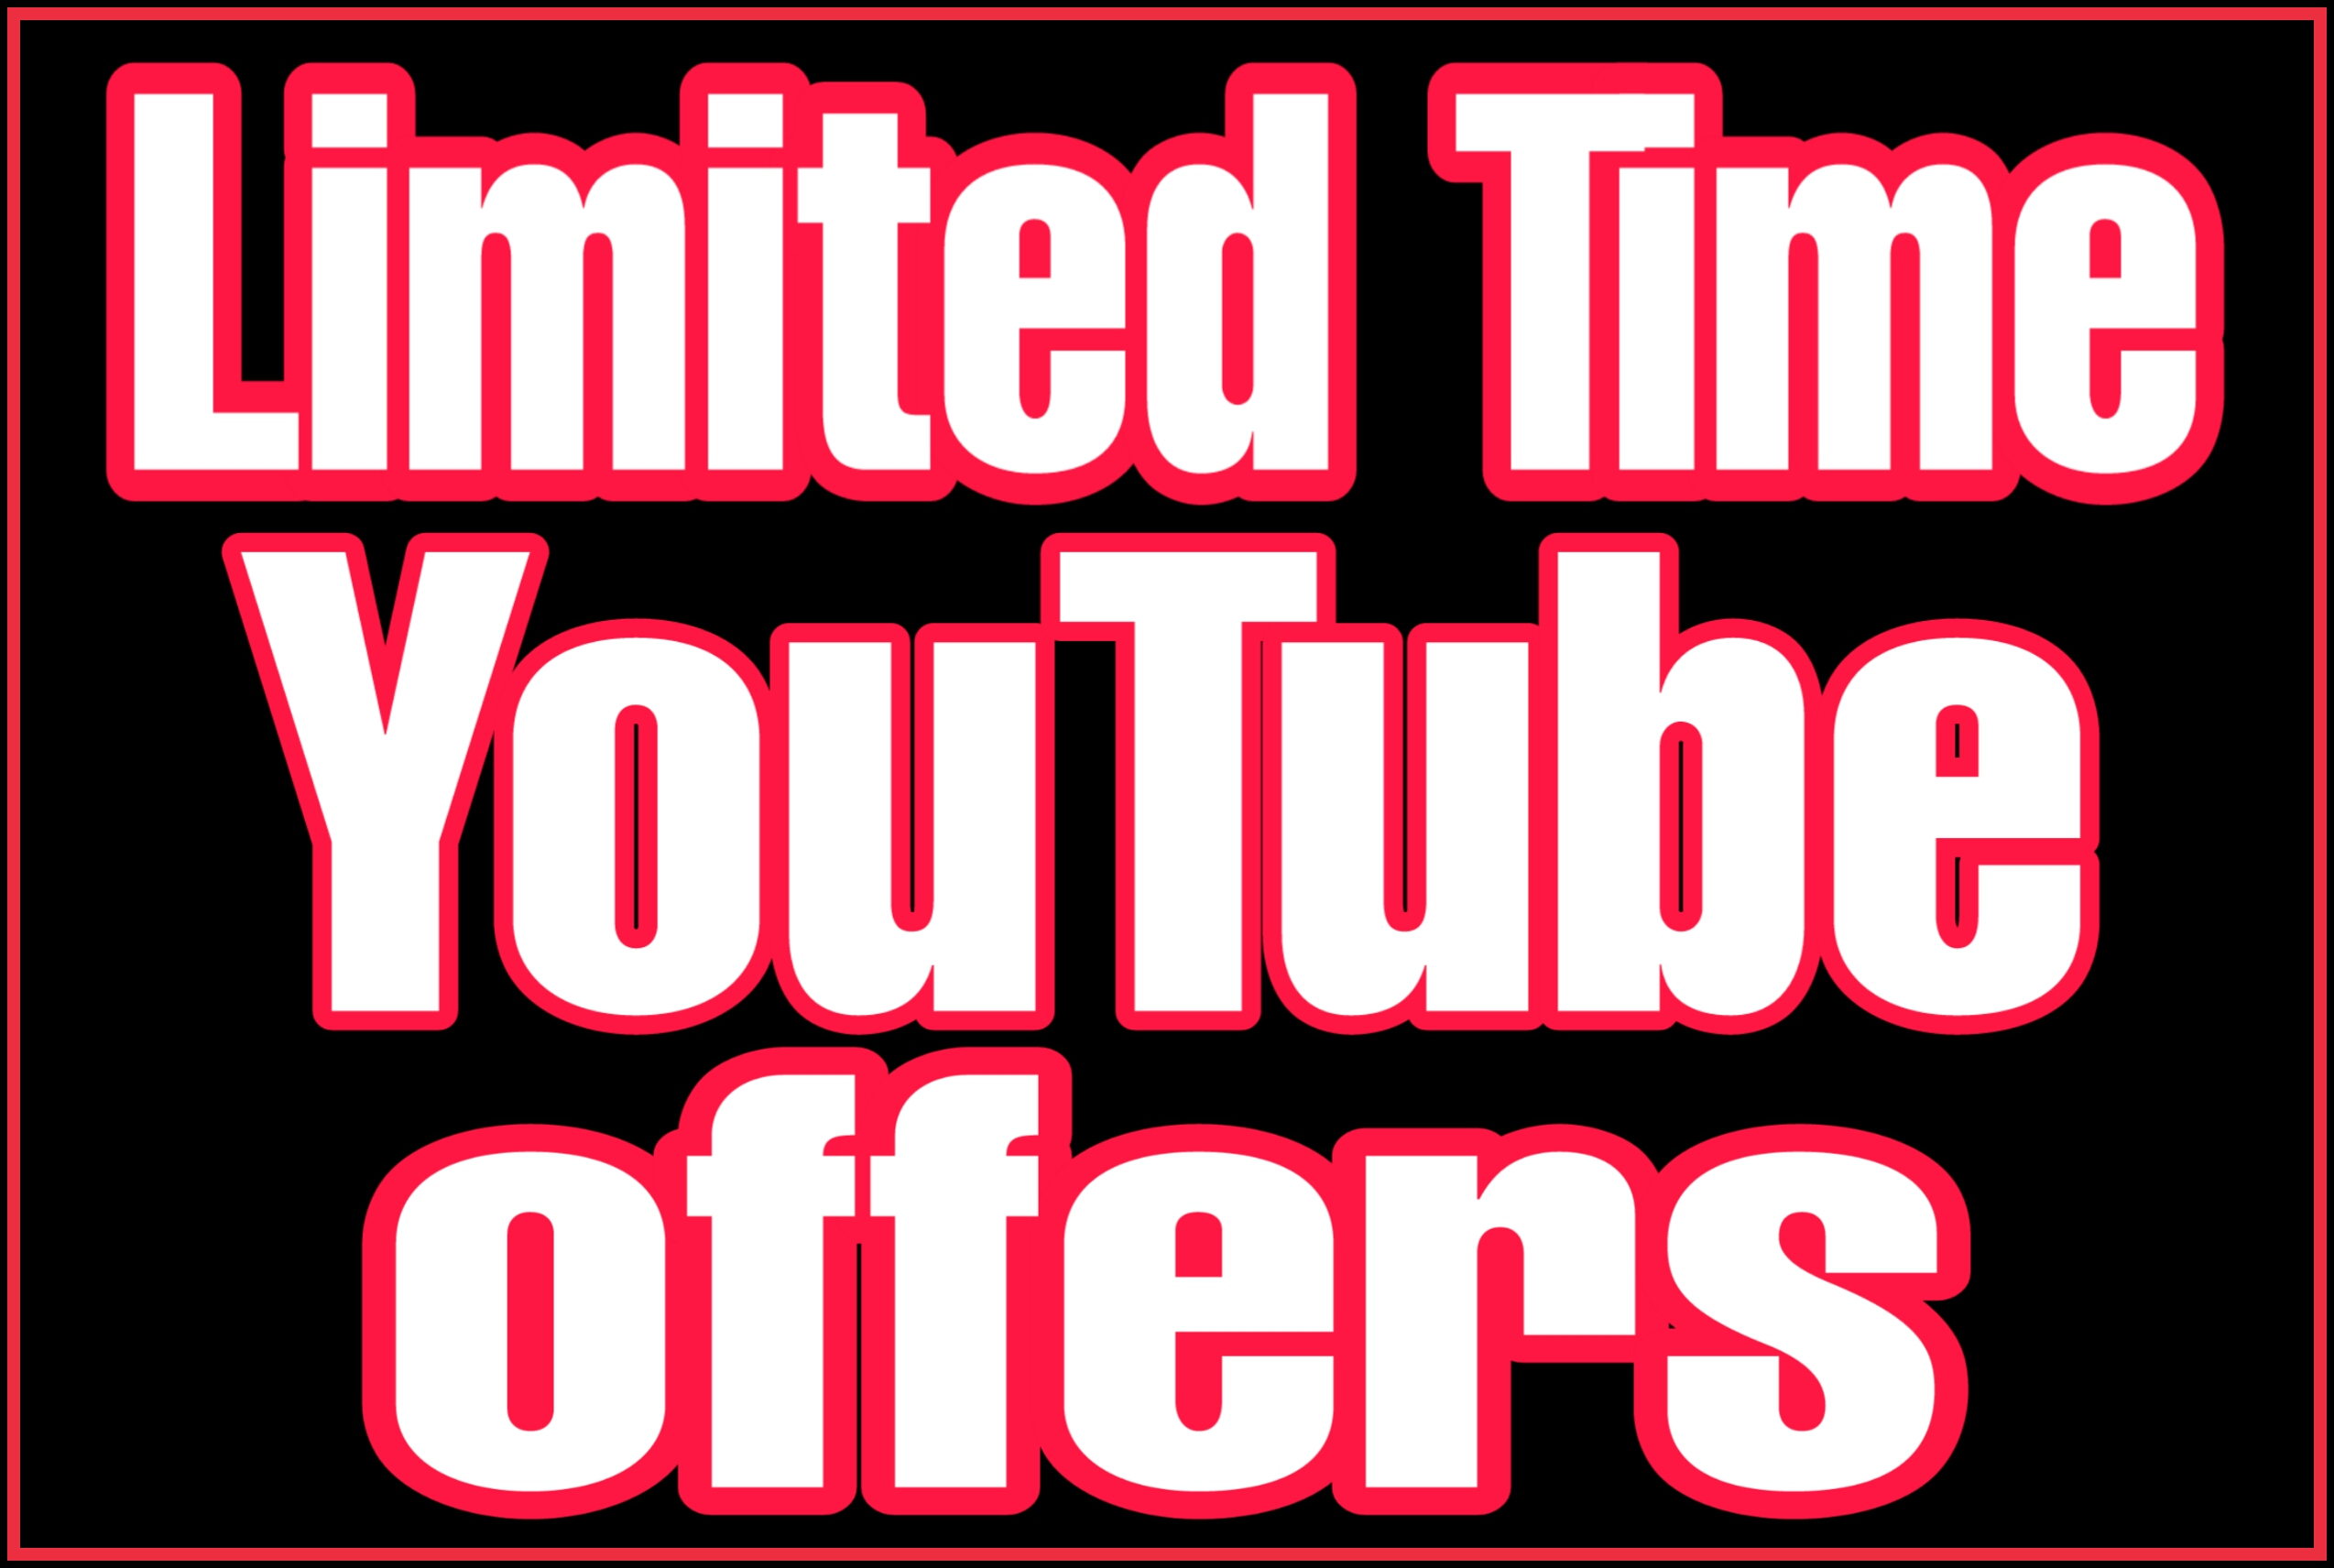 Permanent High quality youtube video promotion & marketing